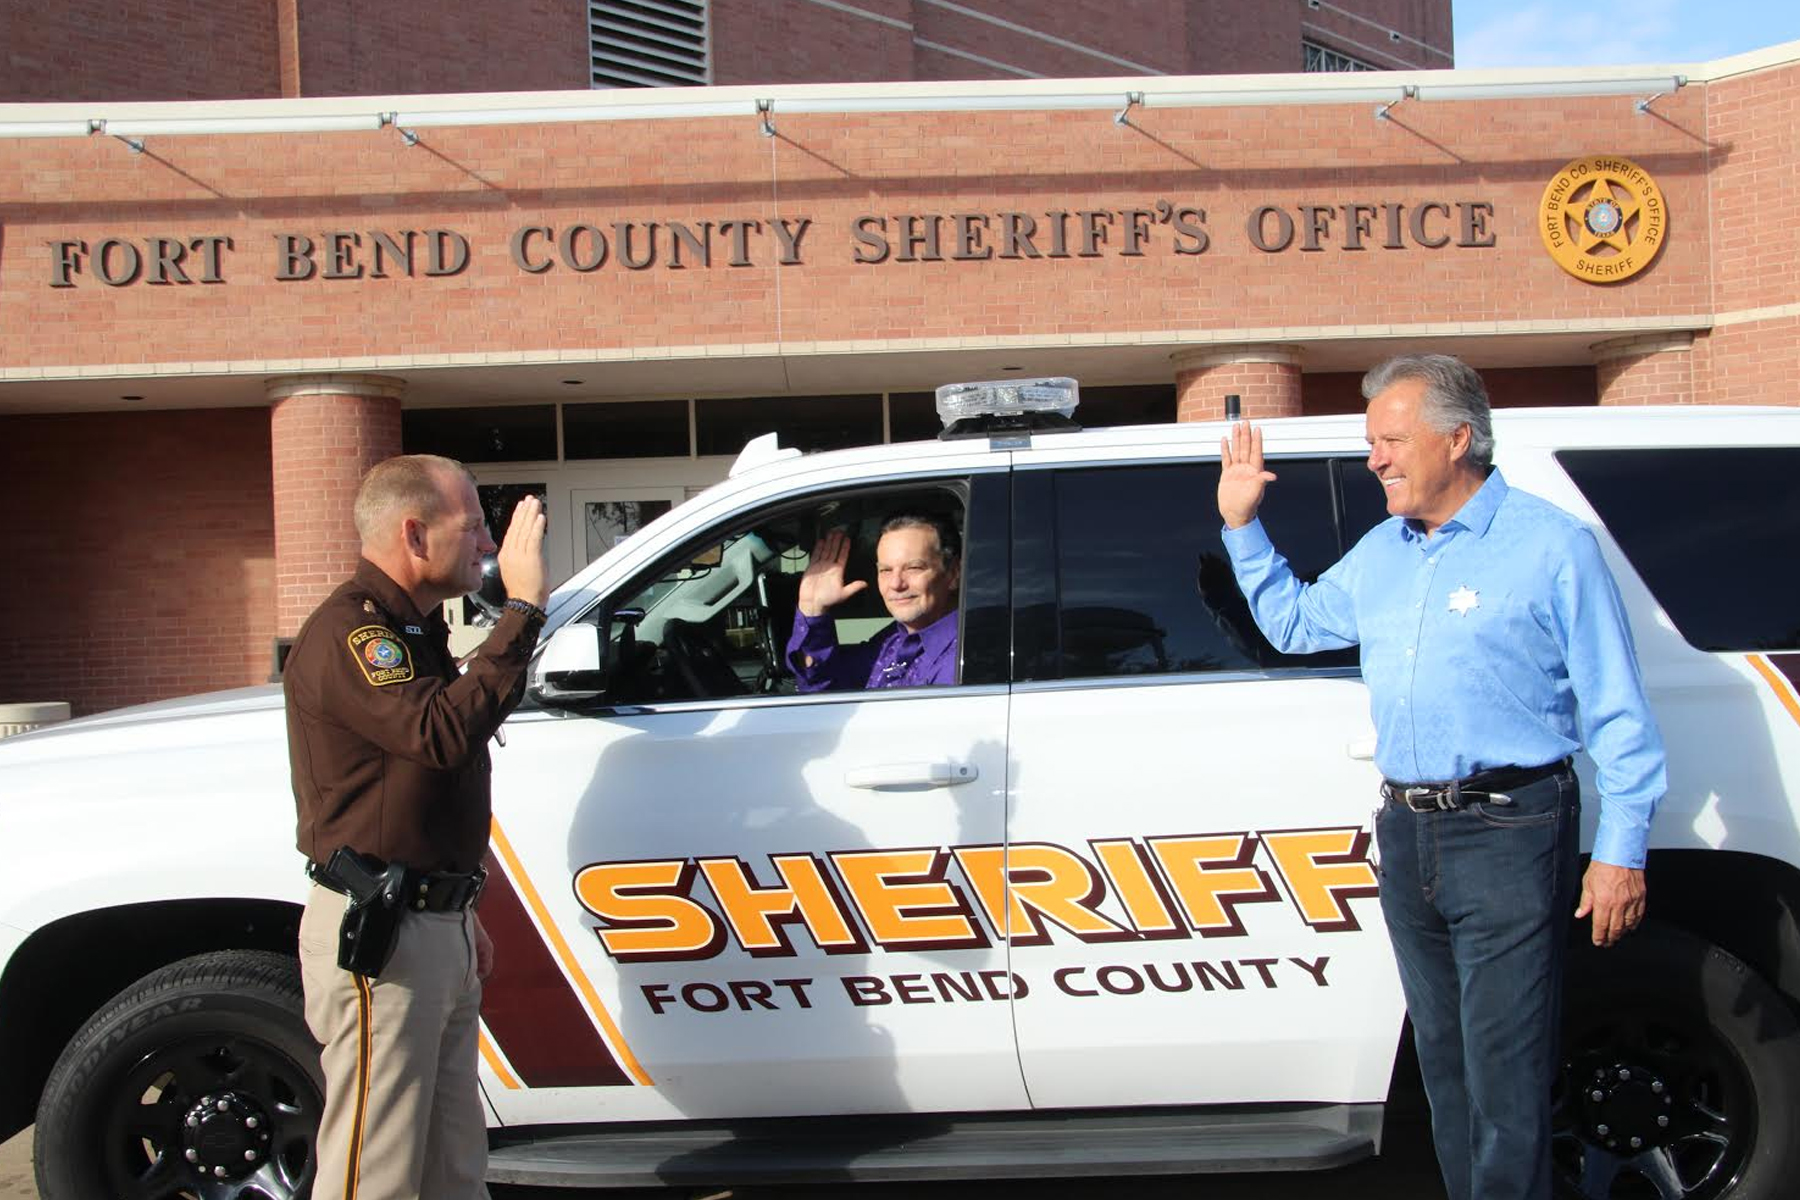 fort bend county sheriff active emergency calls - HD1800×1200